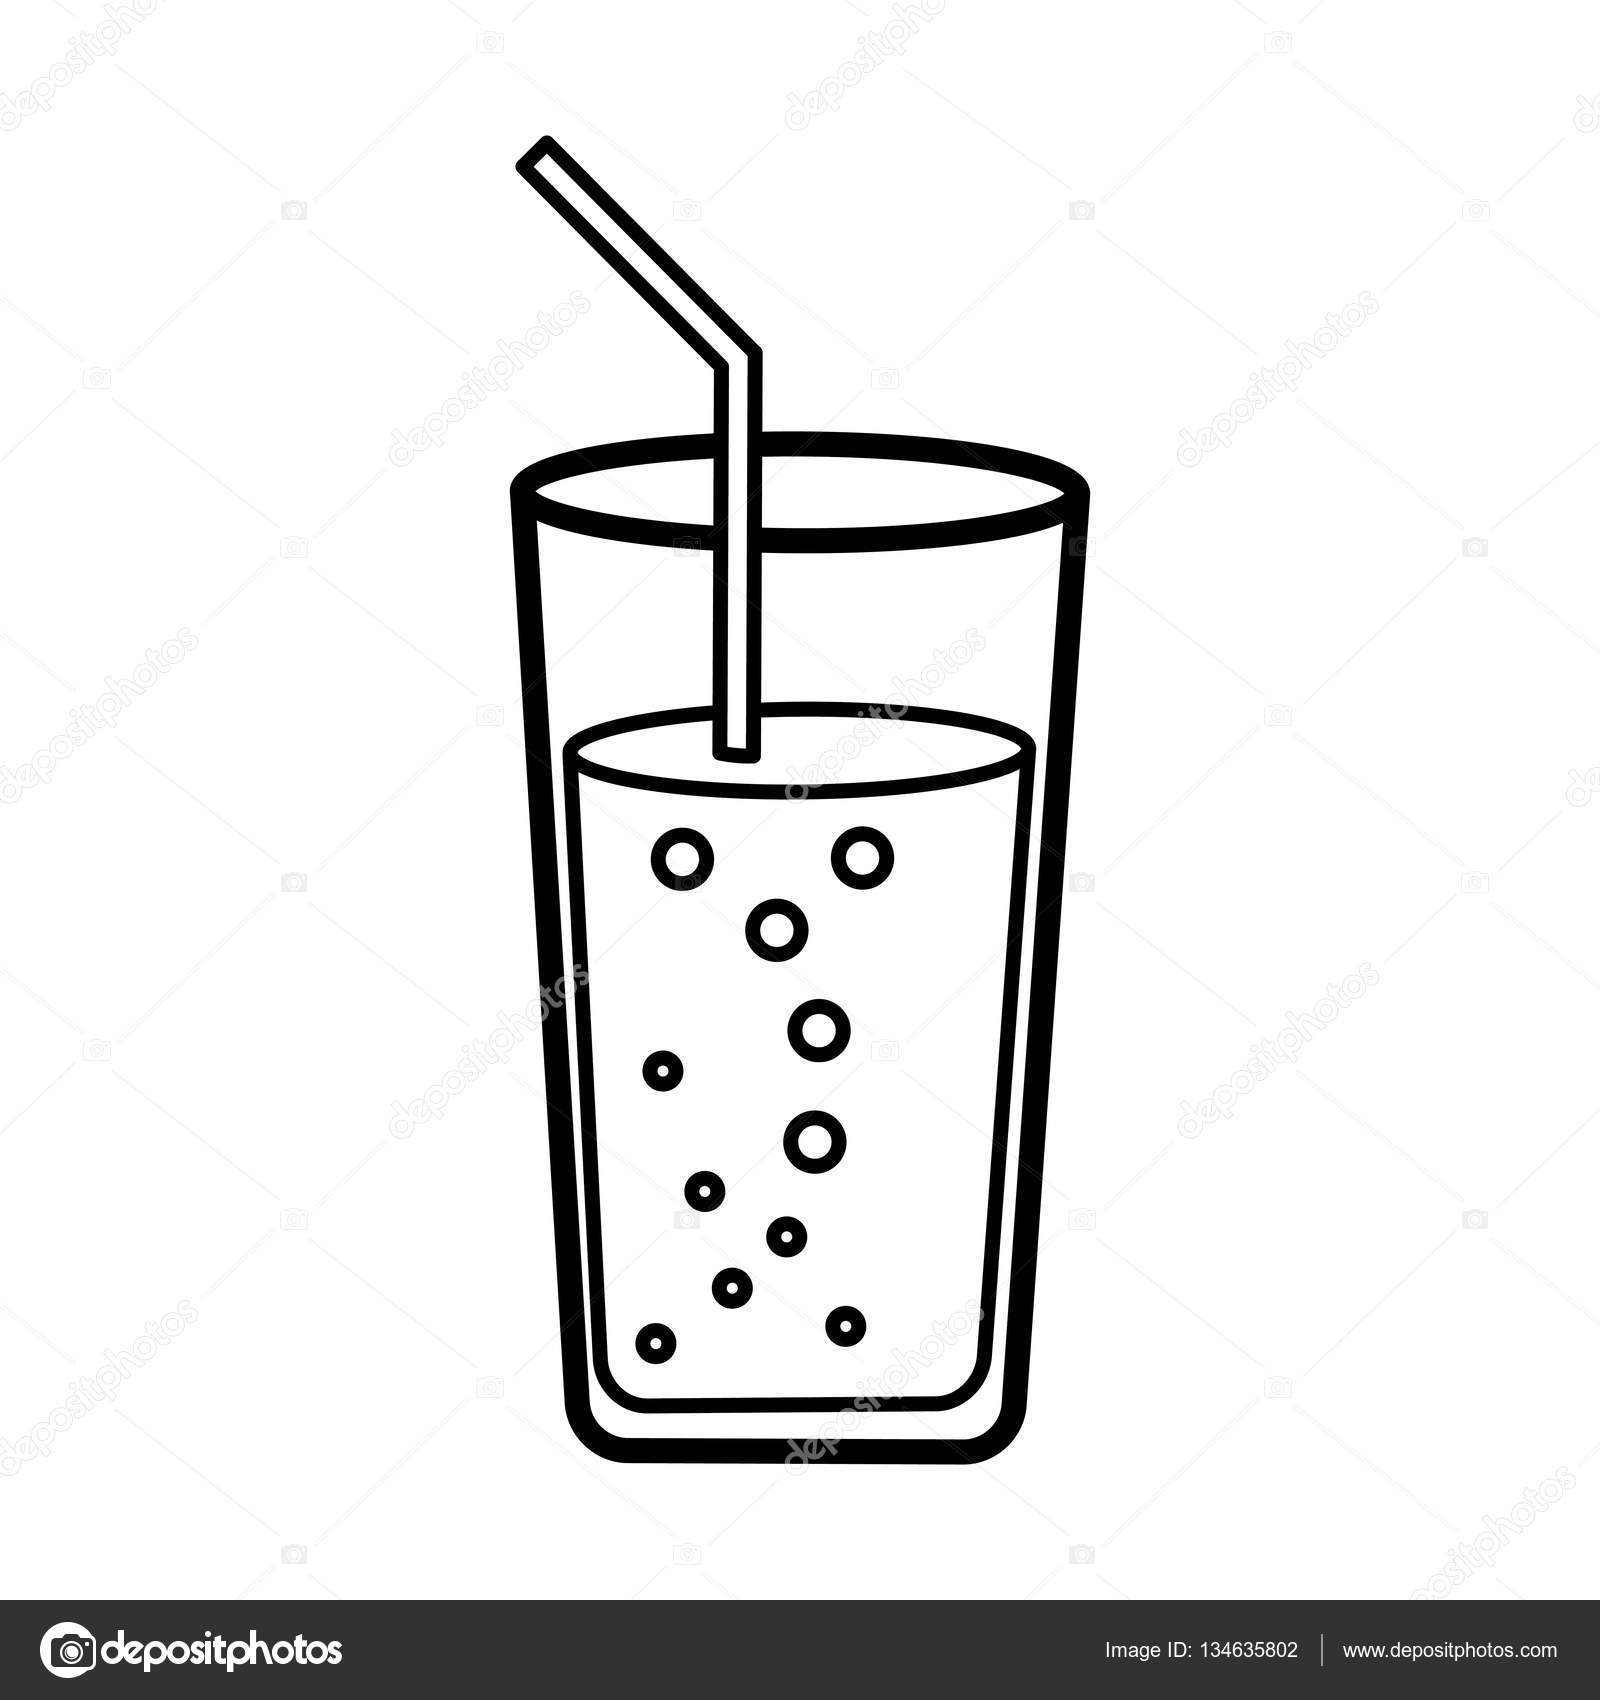 Straw Stock Vectors, Royalty Free Straw Illustrations.